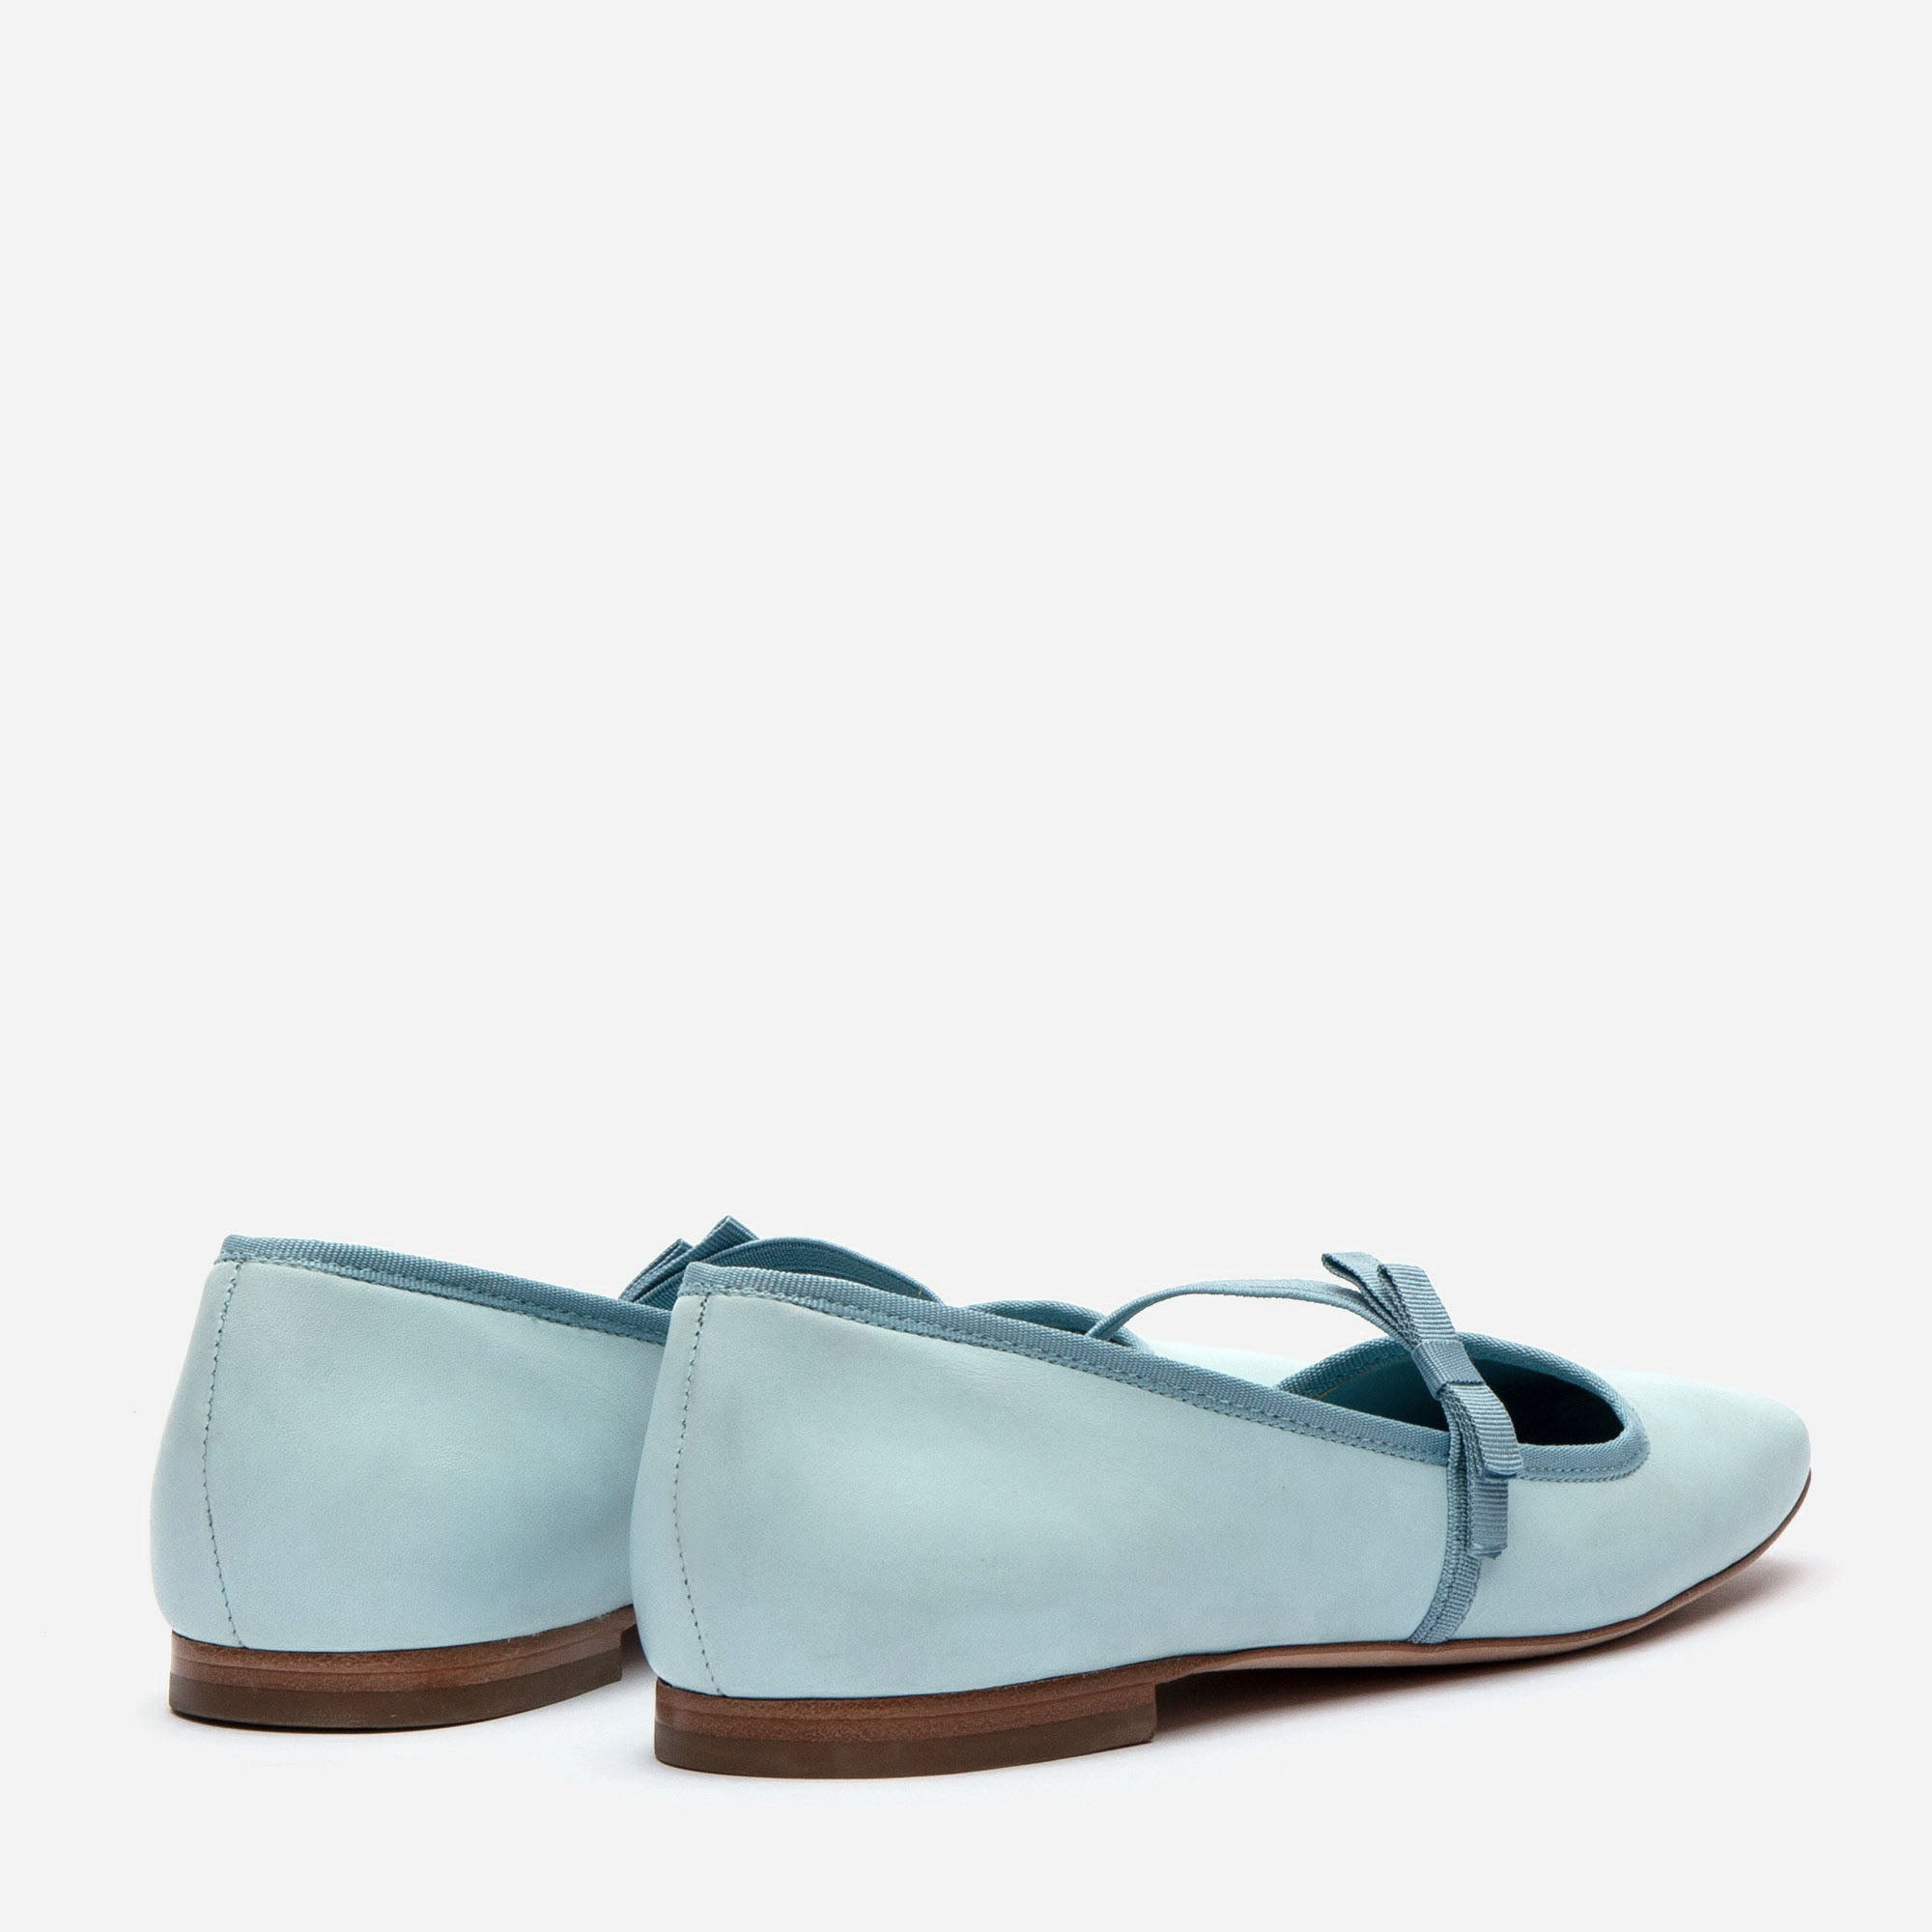 Jude Mary Jane Leather Flats Light Blue